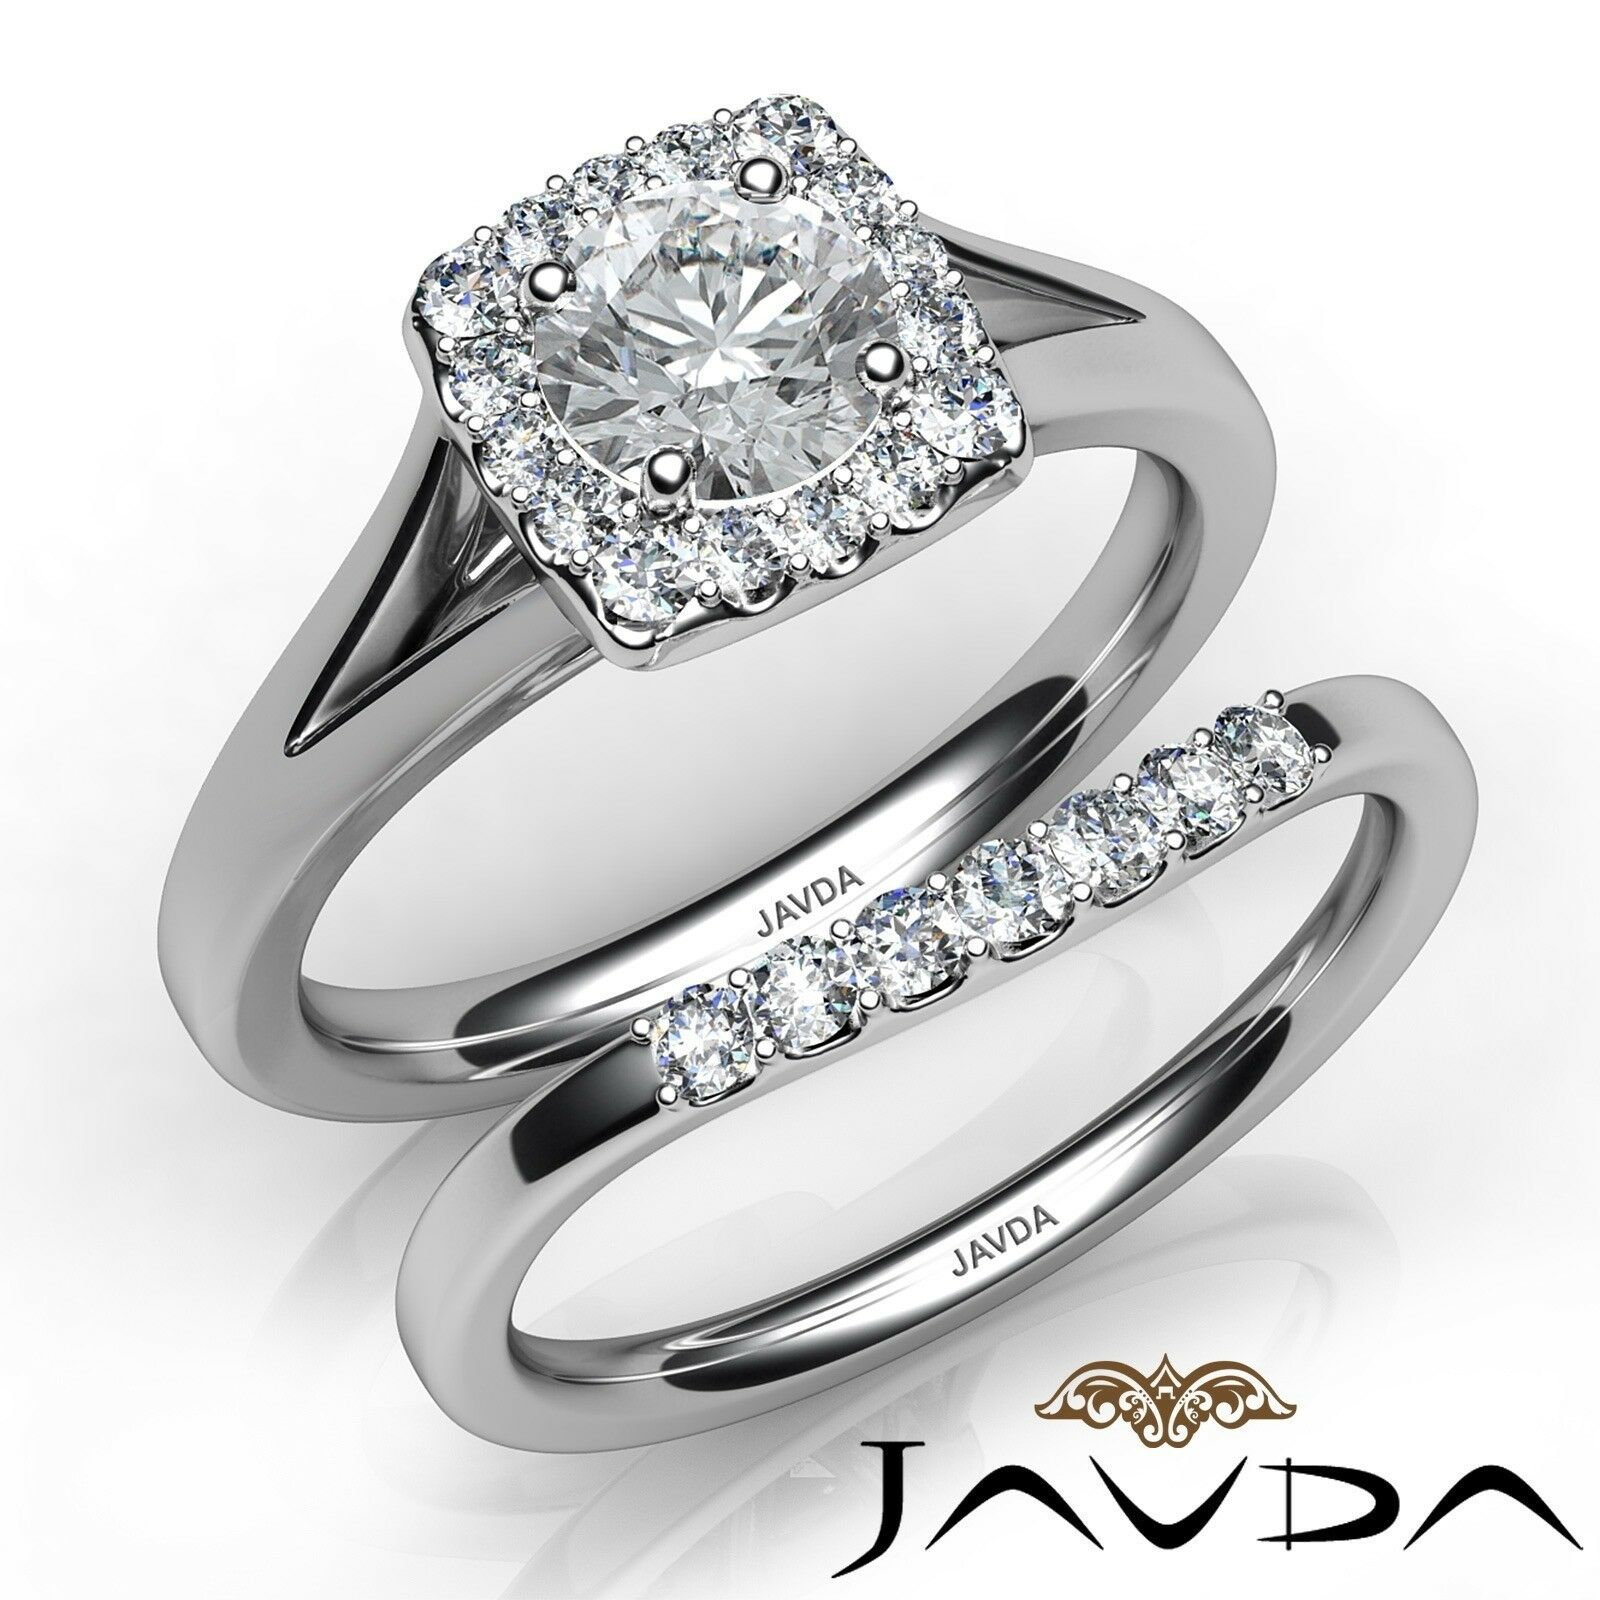 1.17ct Halo Side Stone Bridal Set Round Diamond Engagement Ring GIA F-VS2 W Gold